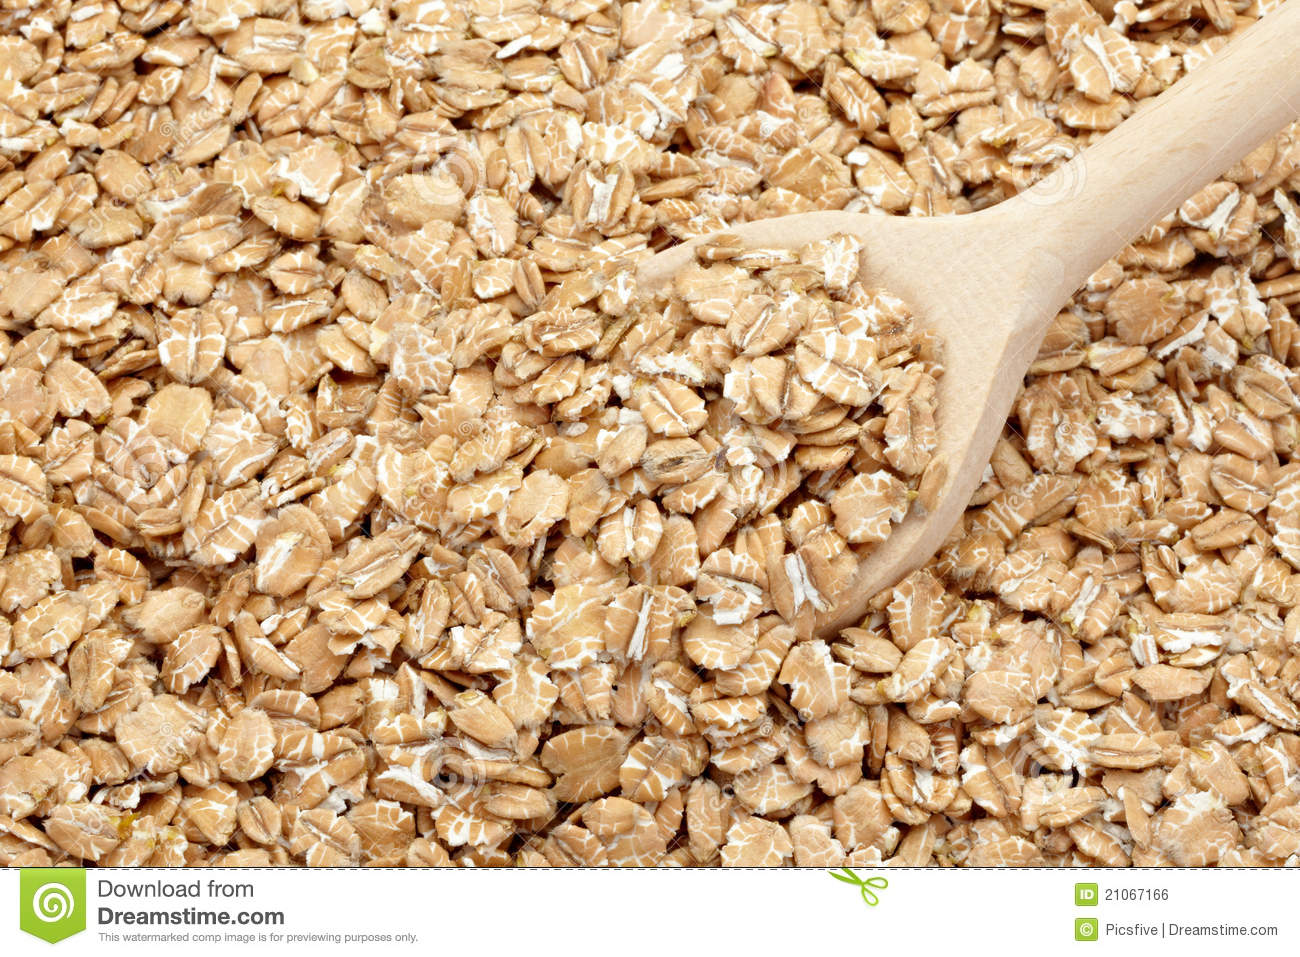 Wheat Flakes Royalty Free Stock Image - Image: 21067166